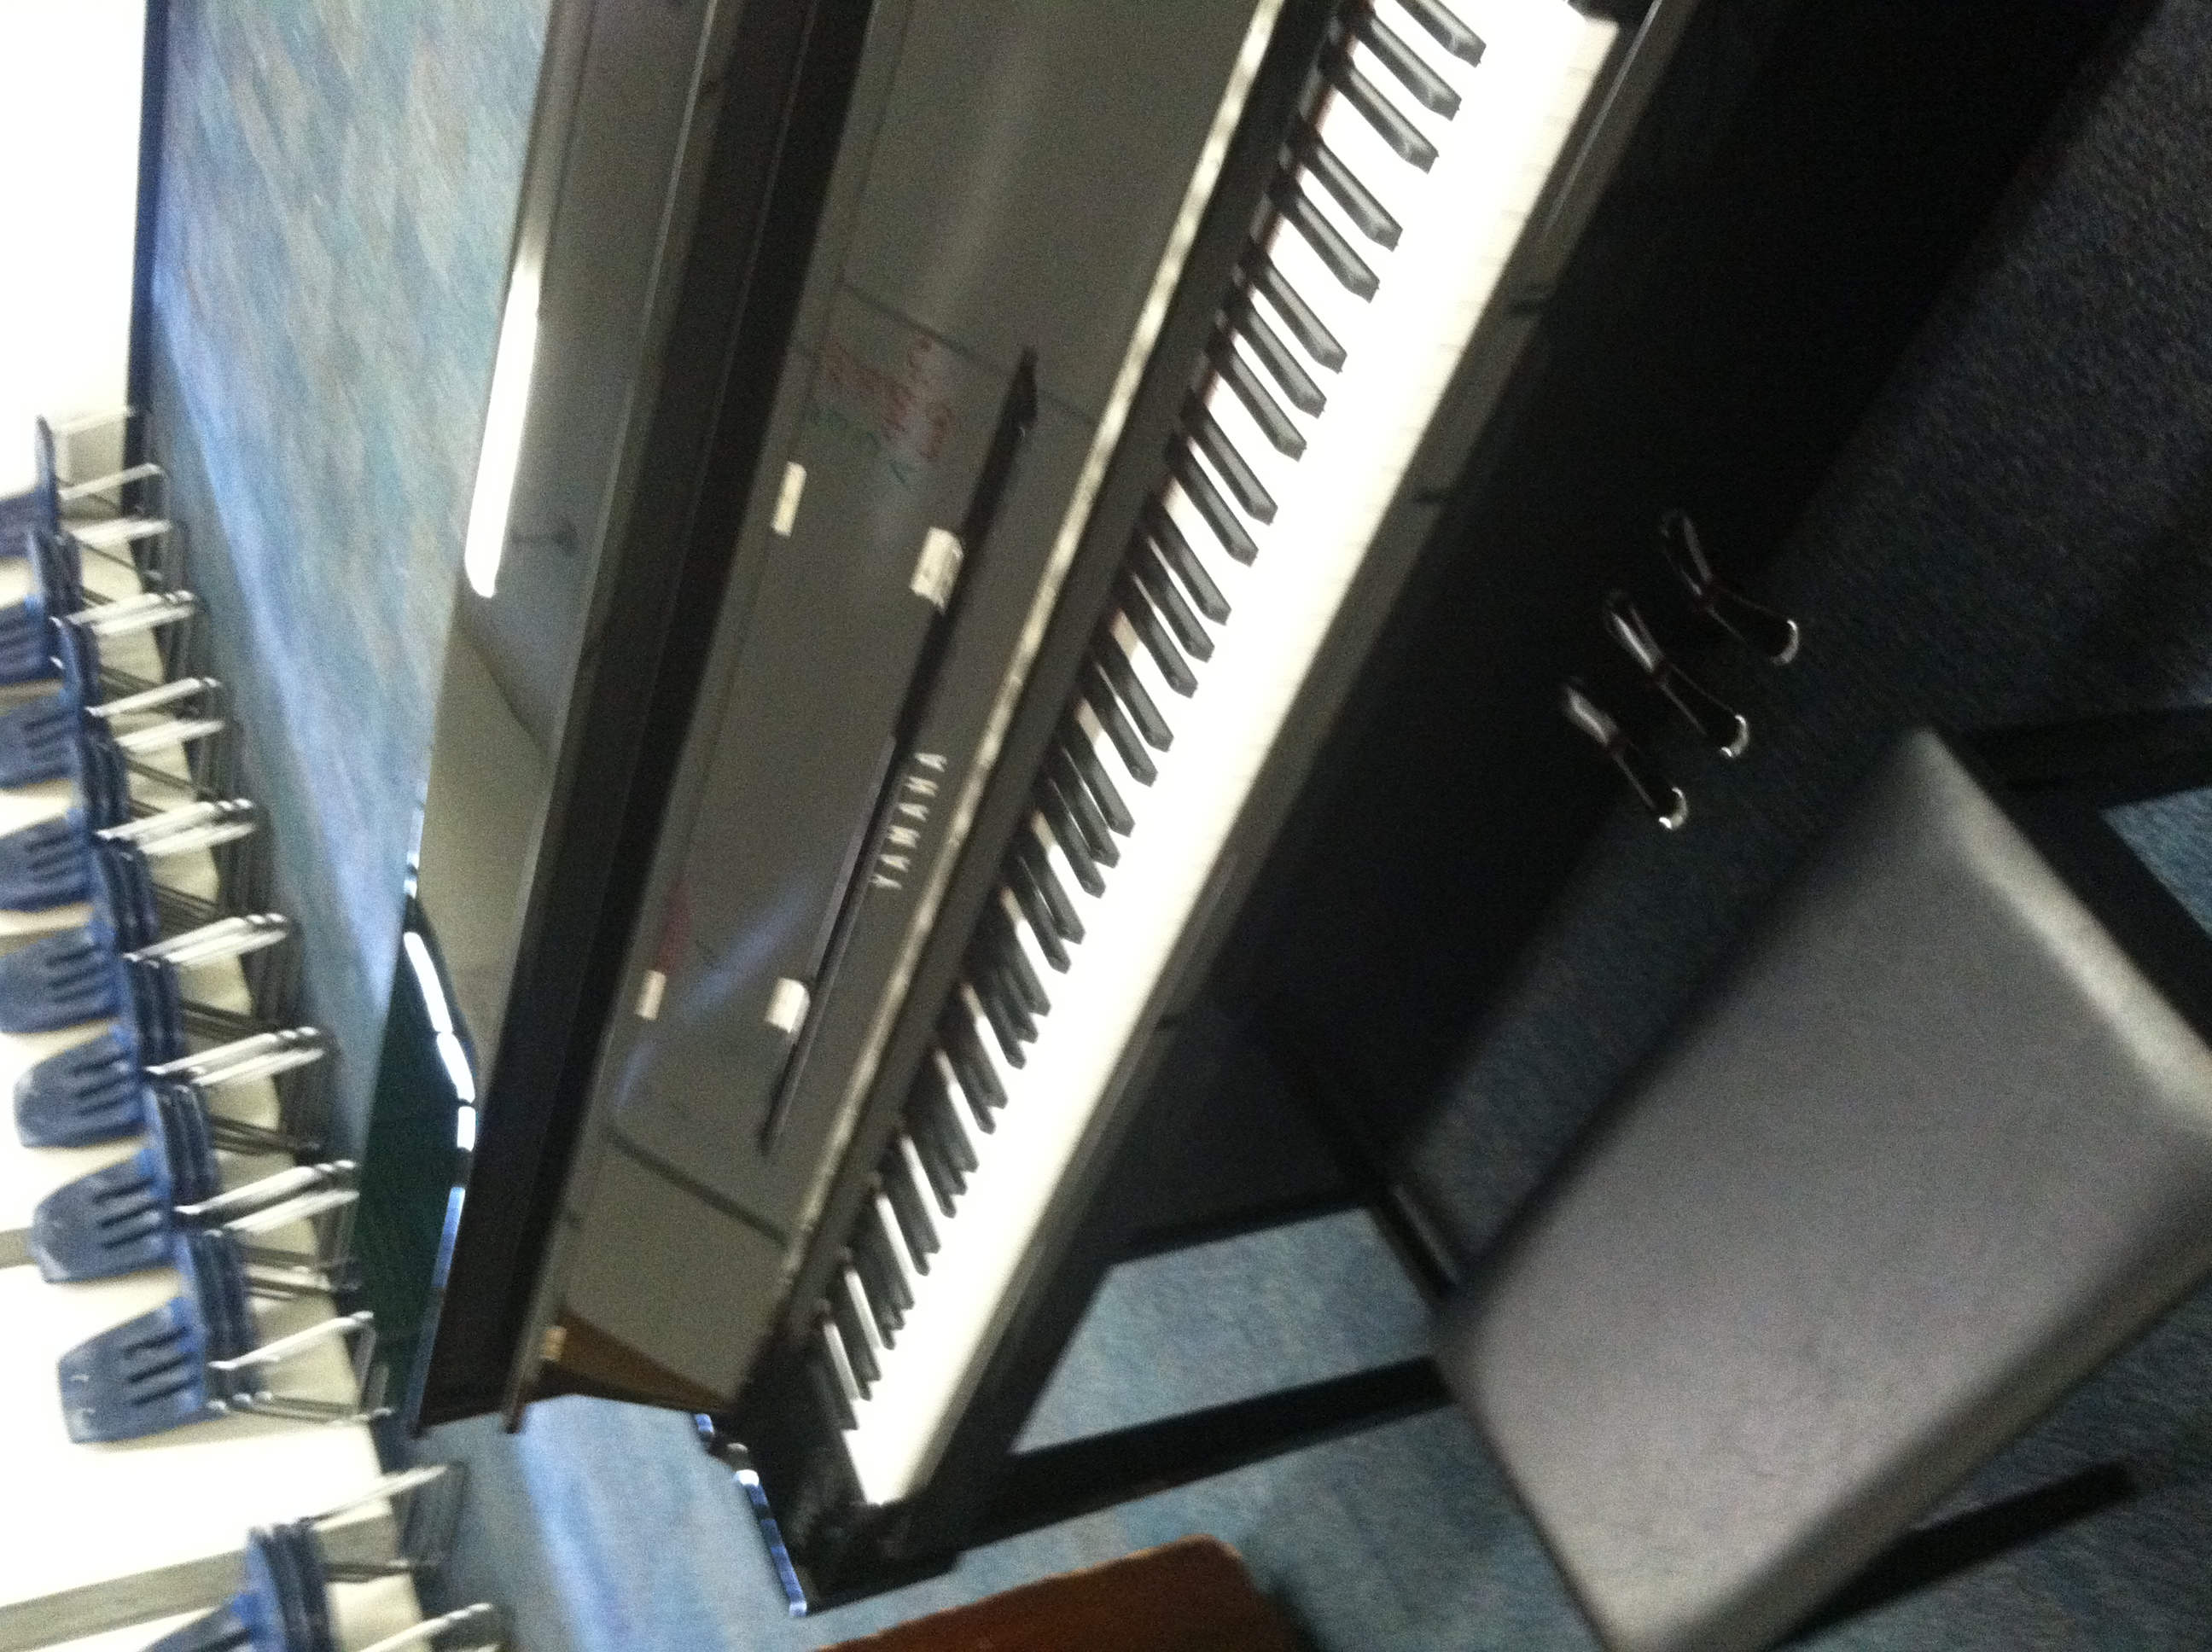 Our new piano - thanks to Barry Manilow's Music Project and Yamaha!